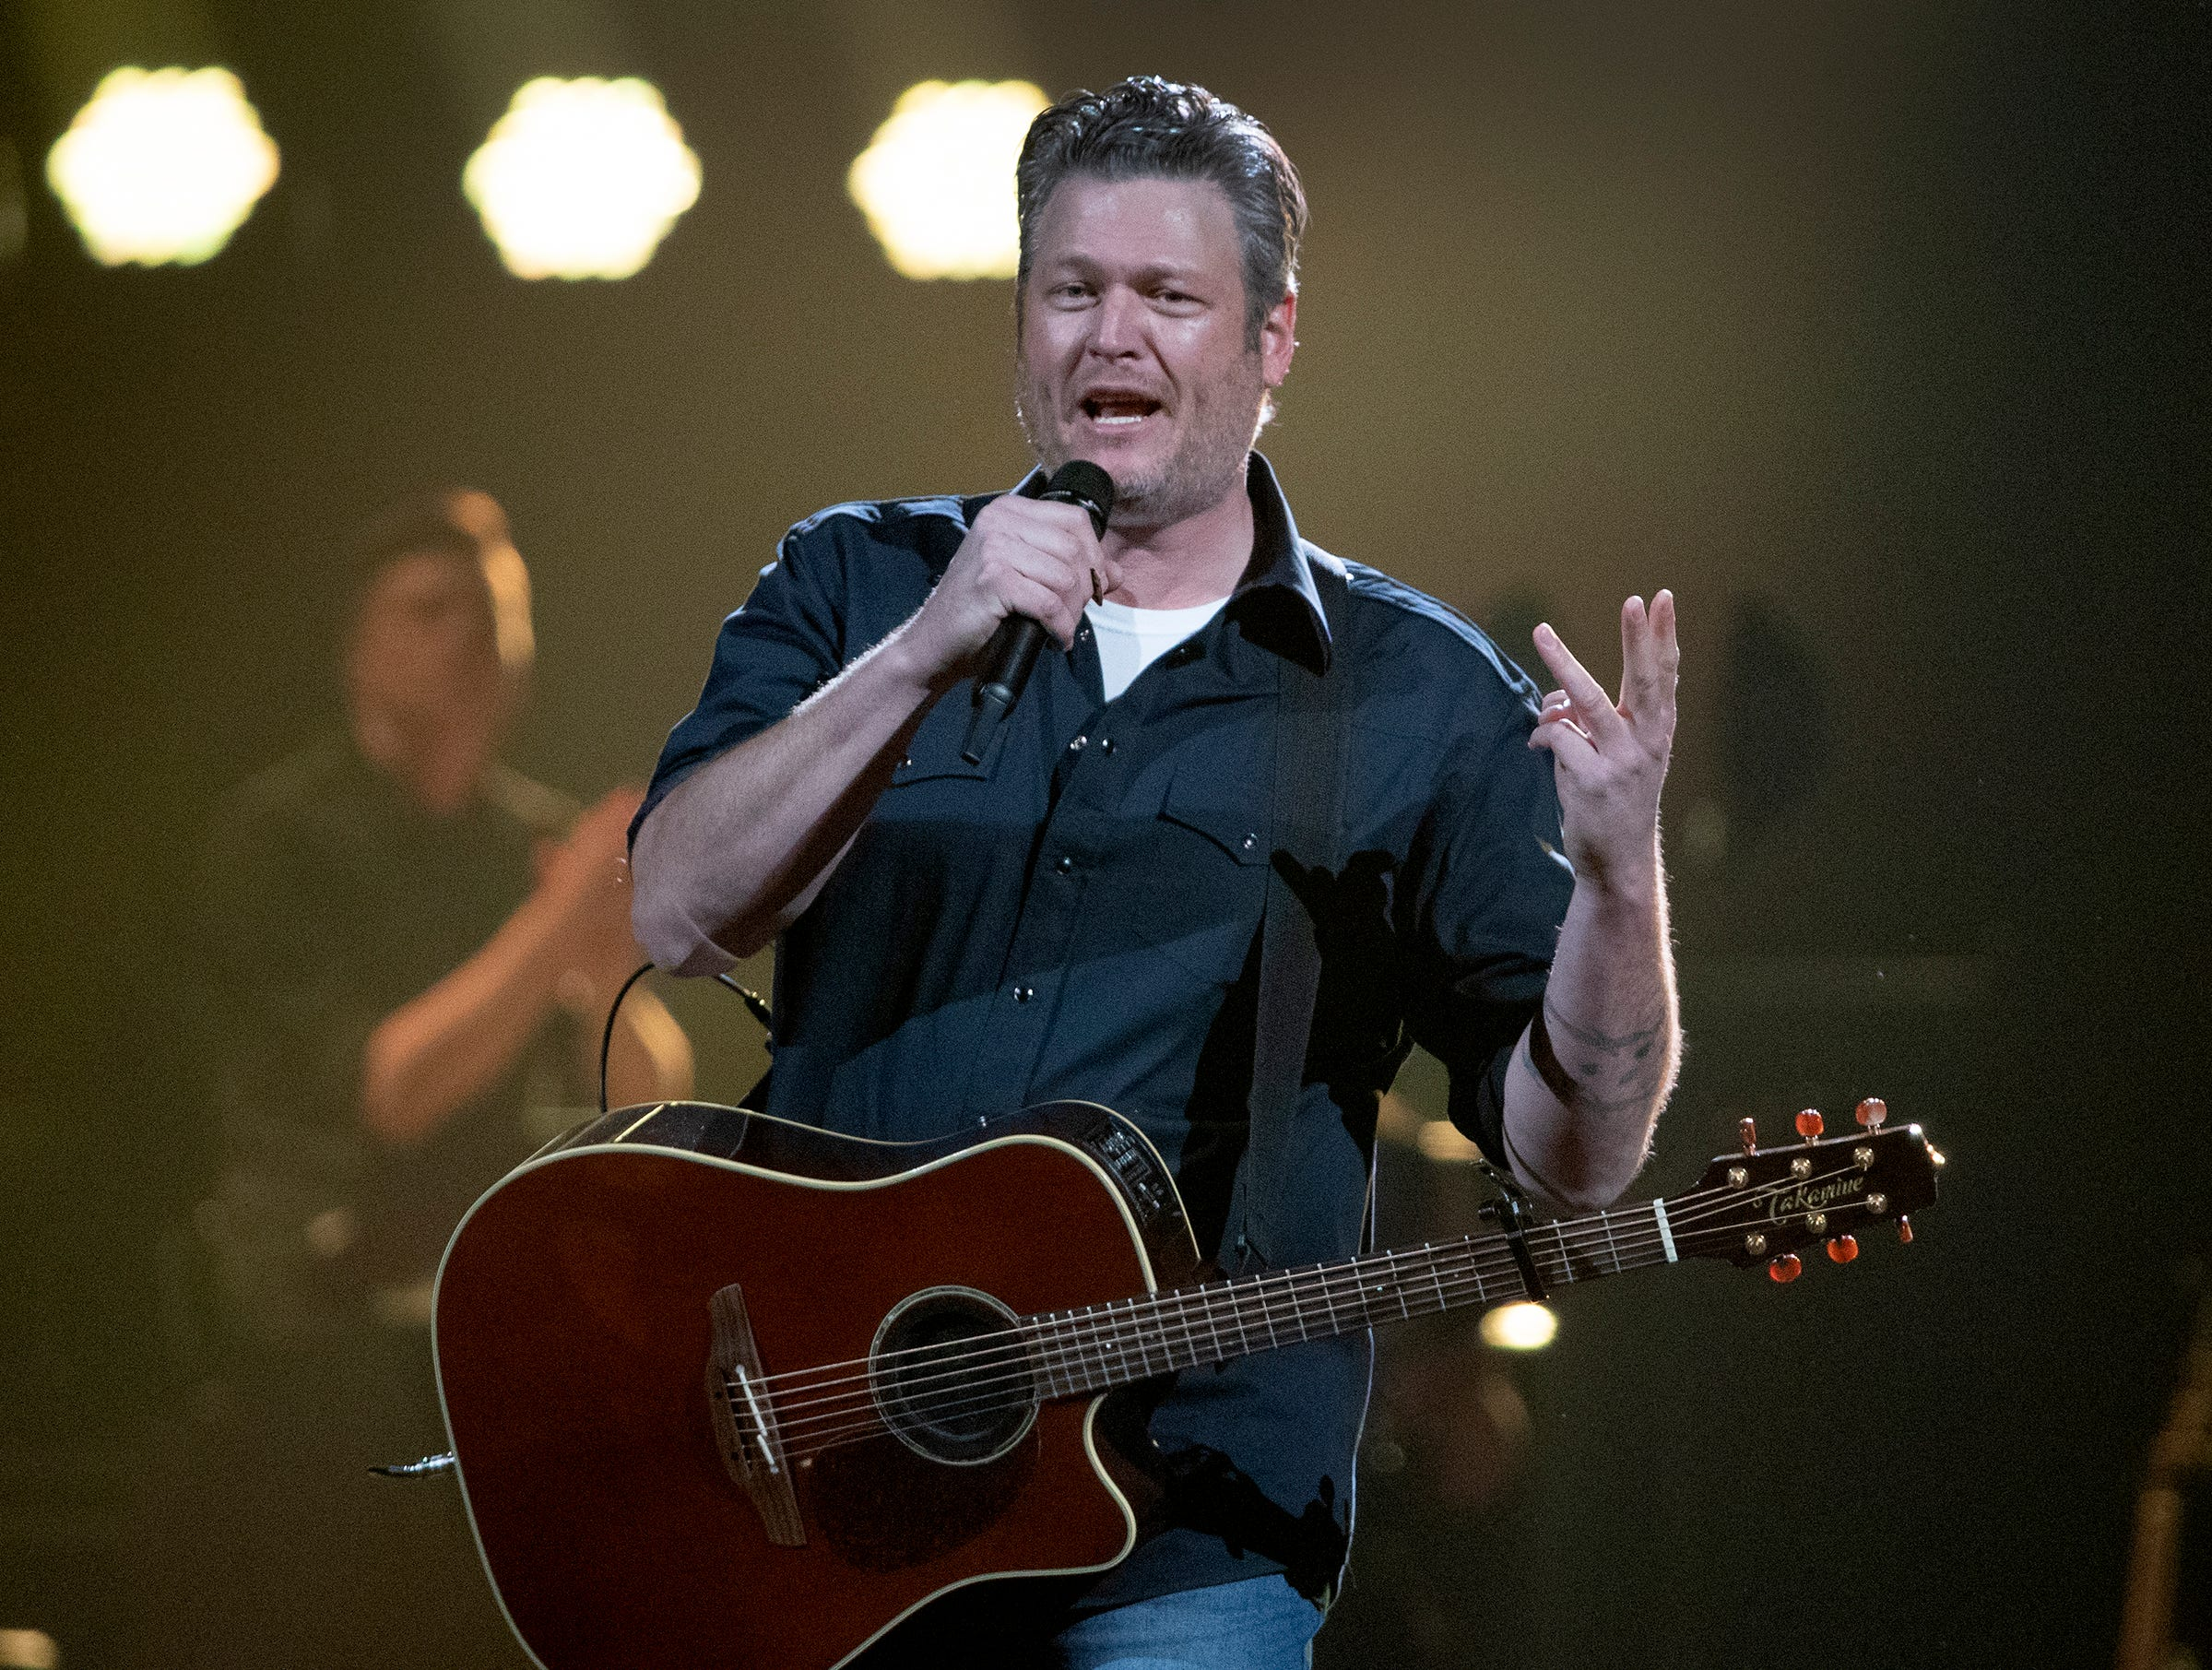 Blake Shelton performs for his many fans during his Friends and Heroes Tour concert at Bankers Life Fieldhouse on Thursday, Feb 21., 2018.